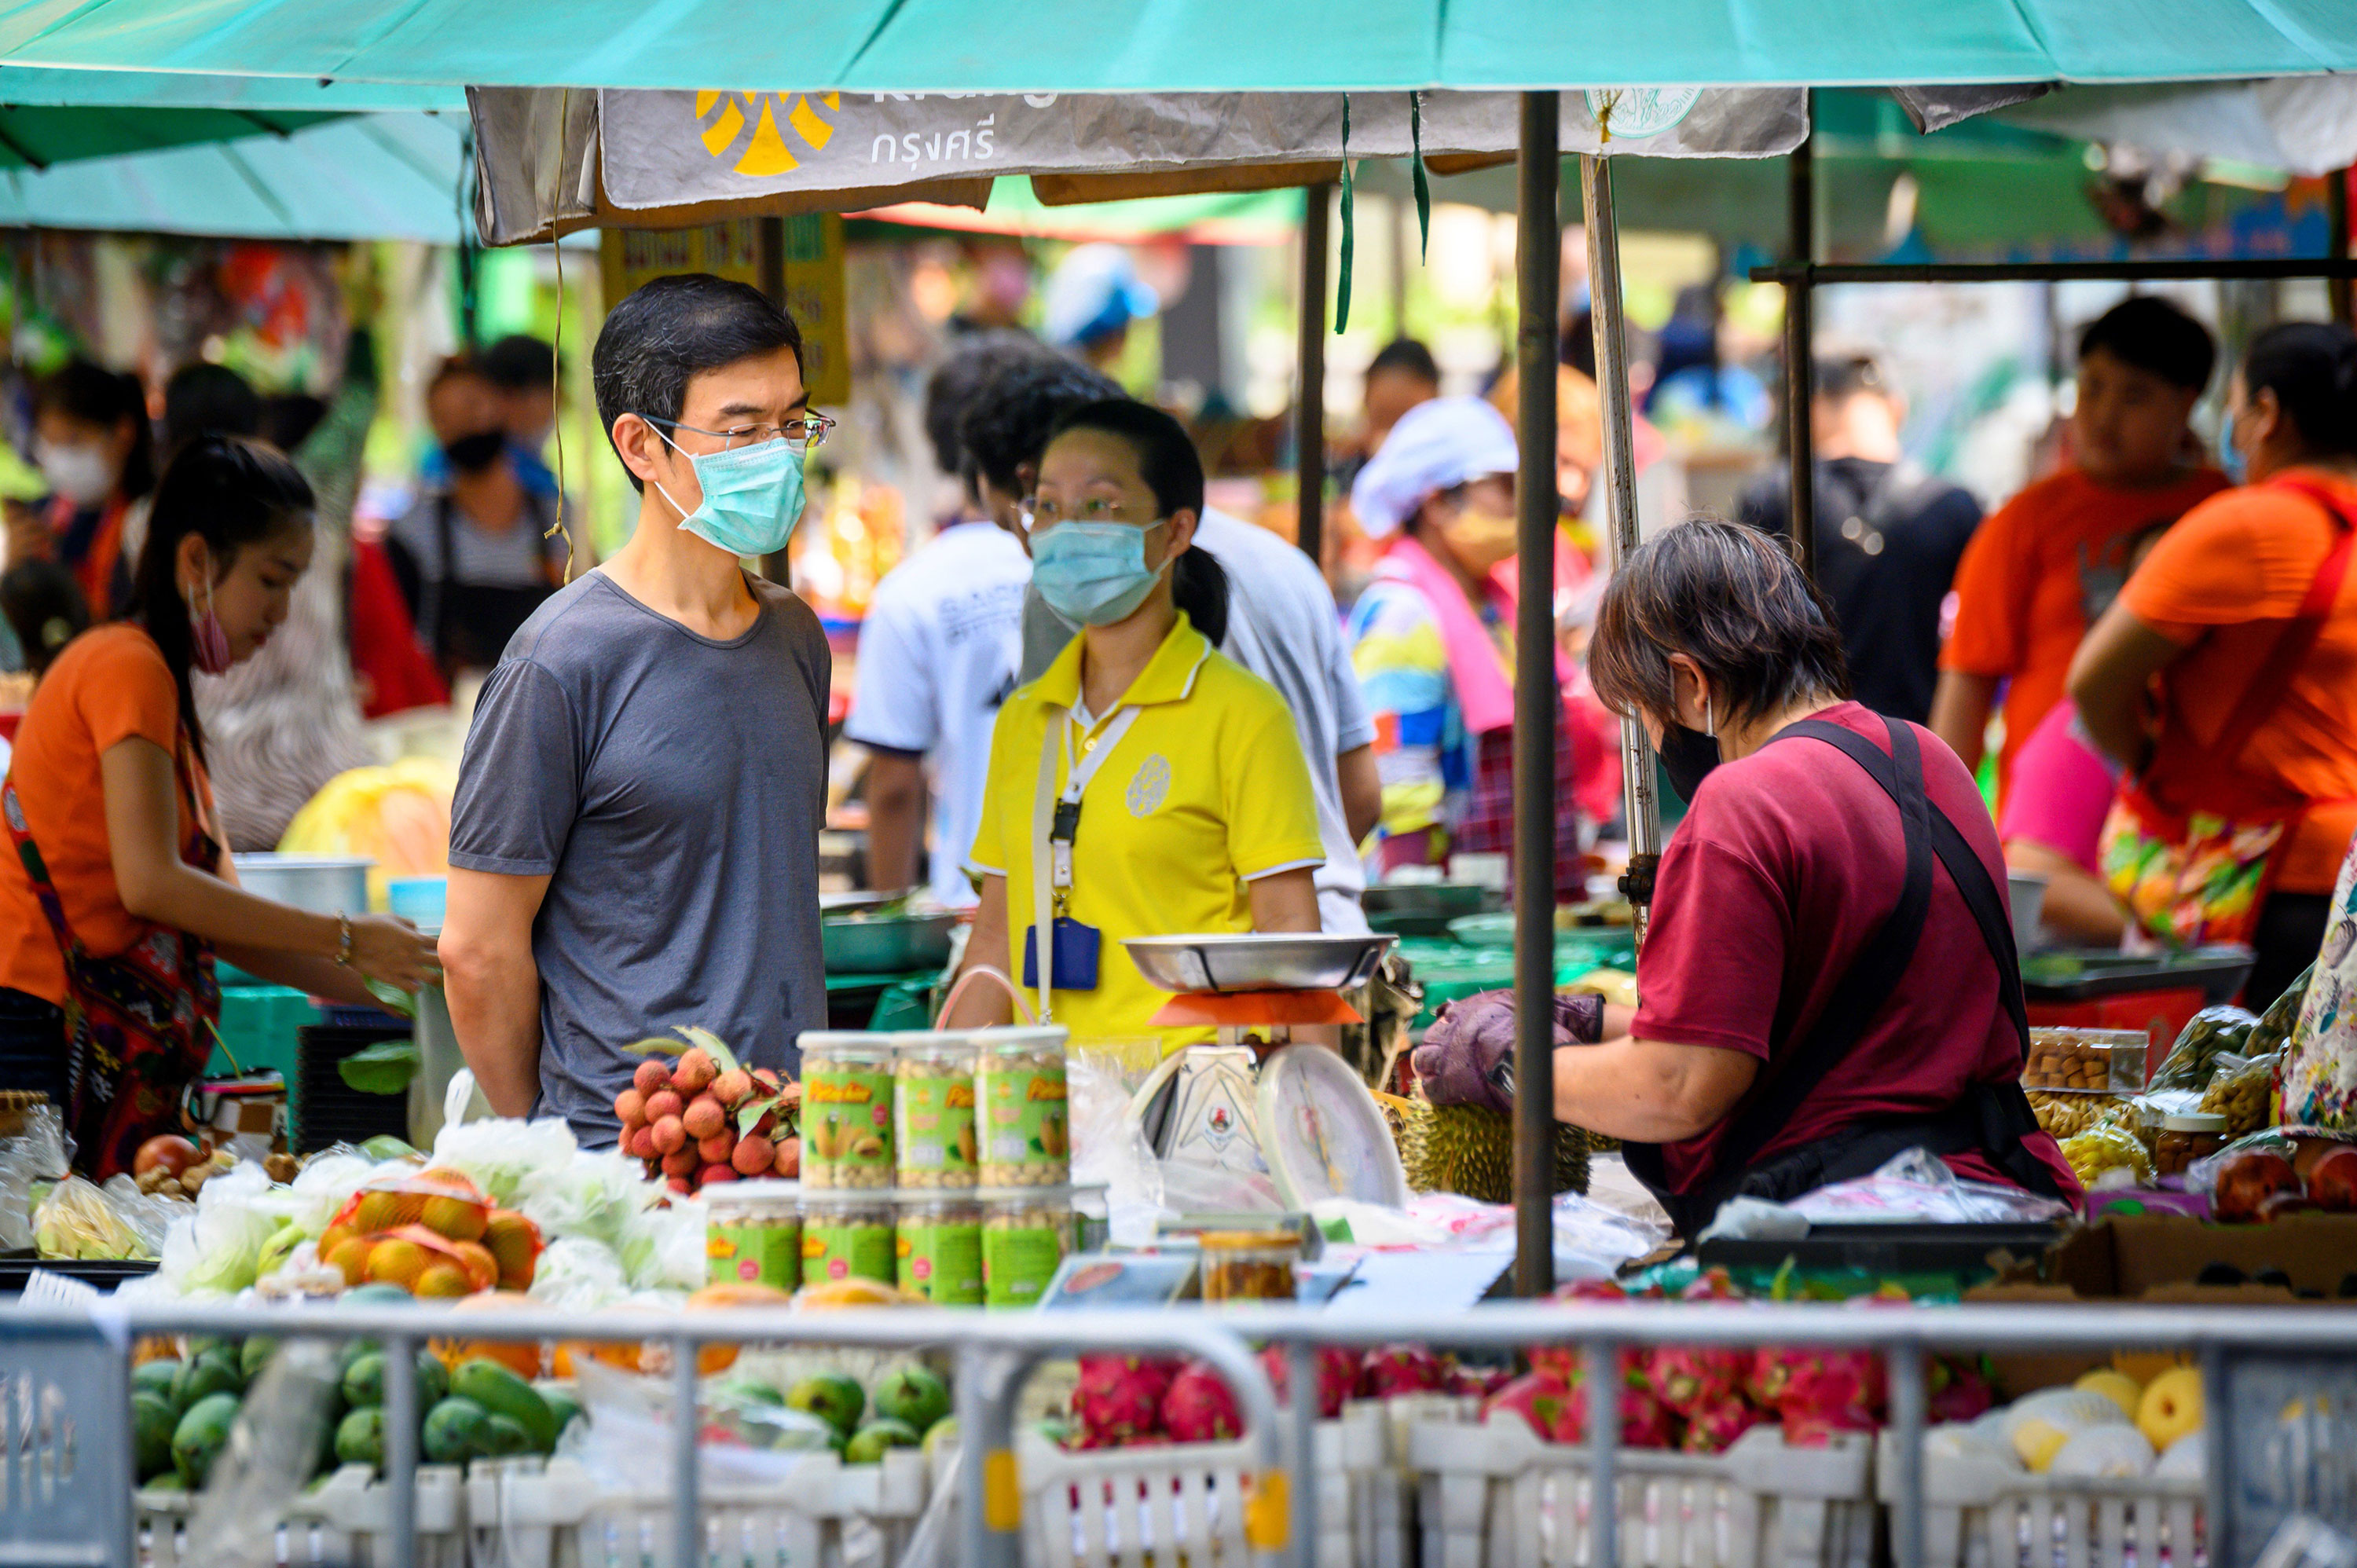 People shop at an open-air market outside Lumpini Park in Bangkok, Thailand, on May 3.